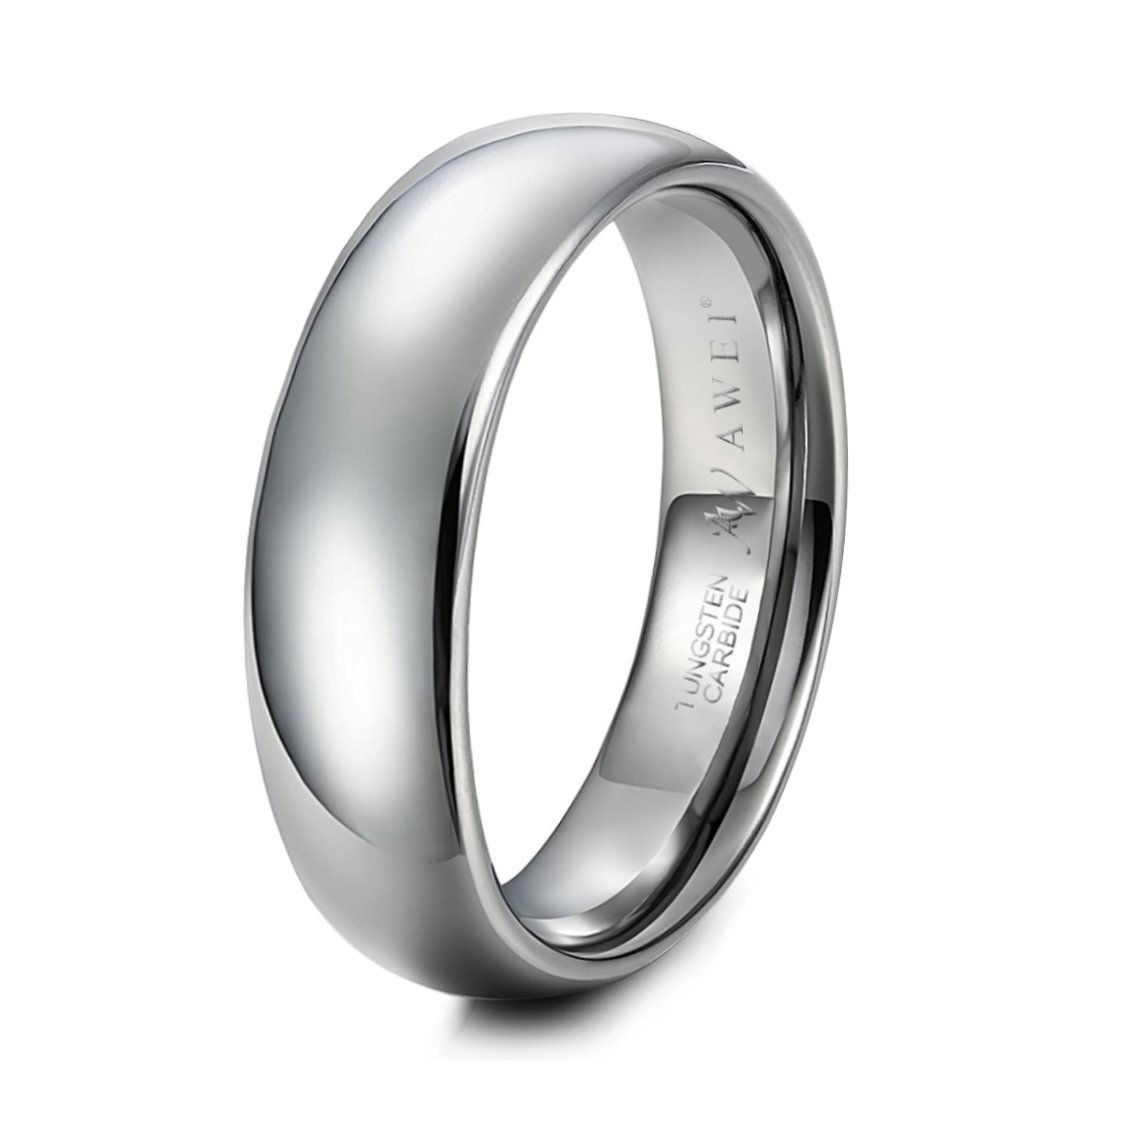 AWEI Wide 8mm Tungsten Ring Band Silver Comfort Fit Classic Wedding Dome Polished Size 12